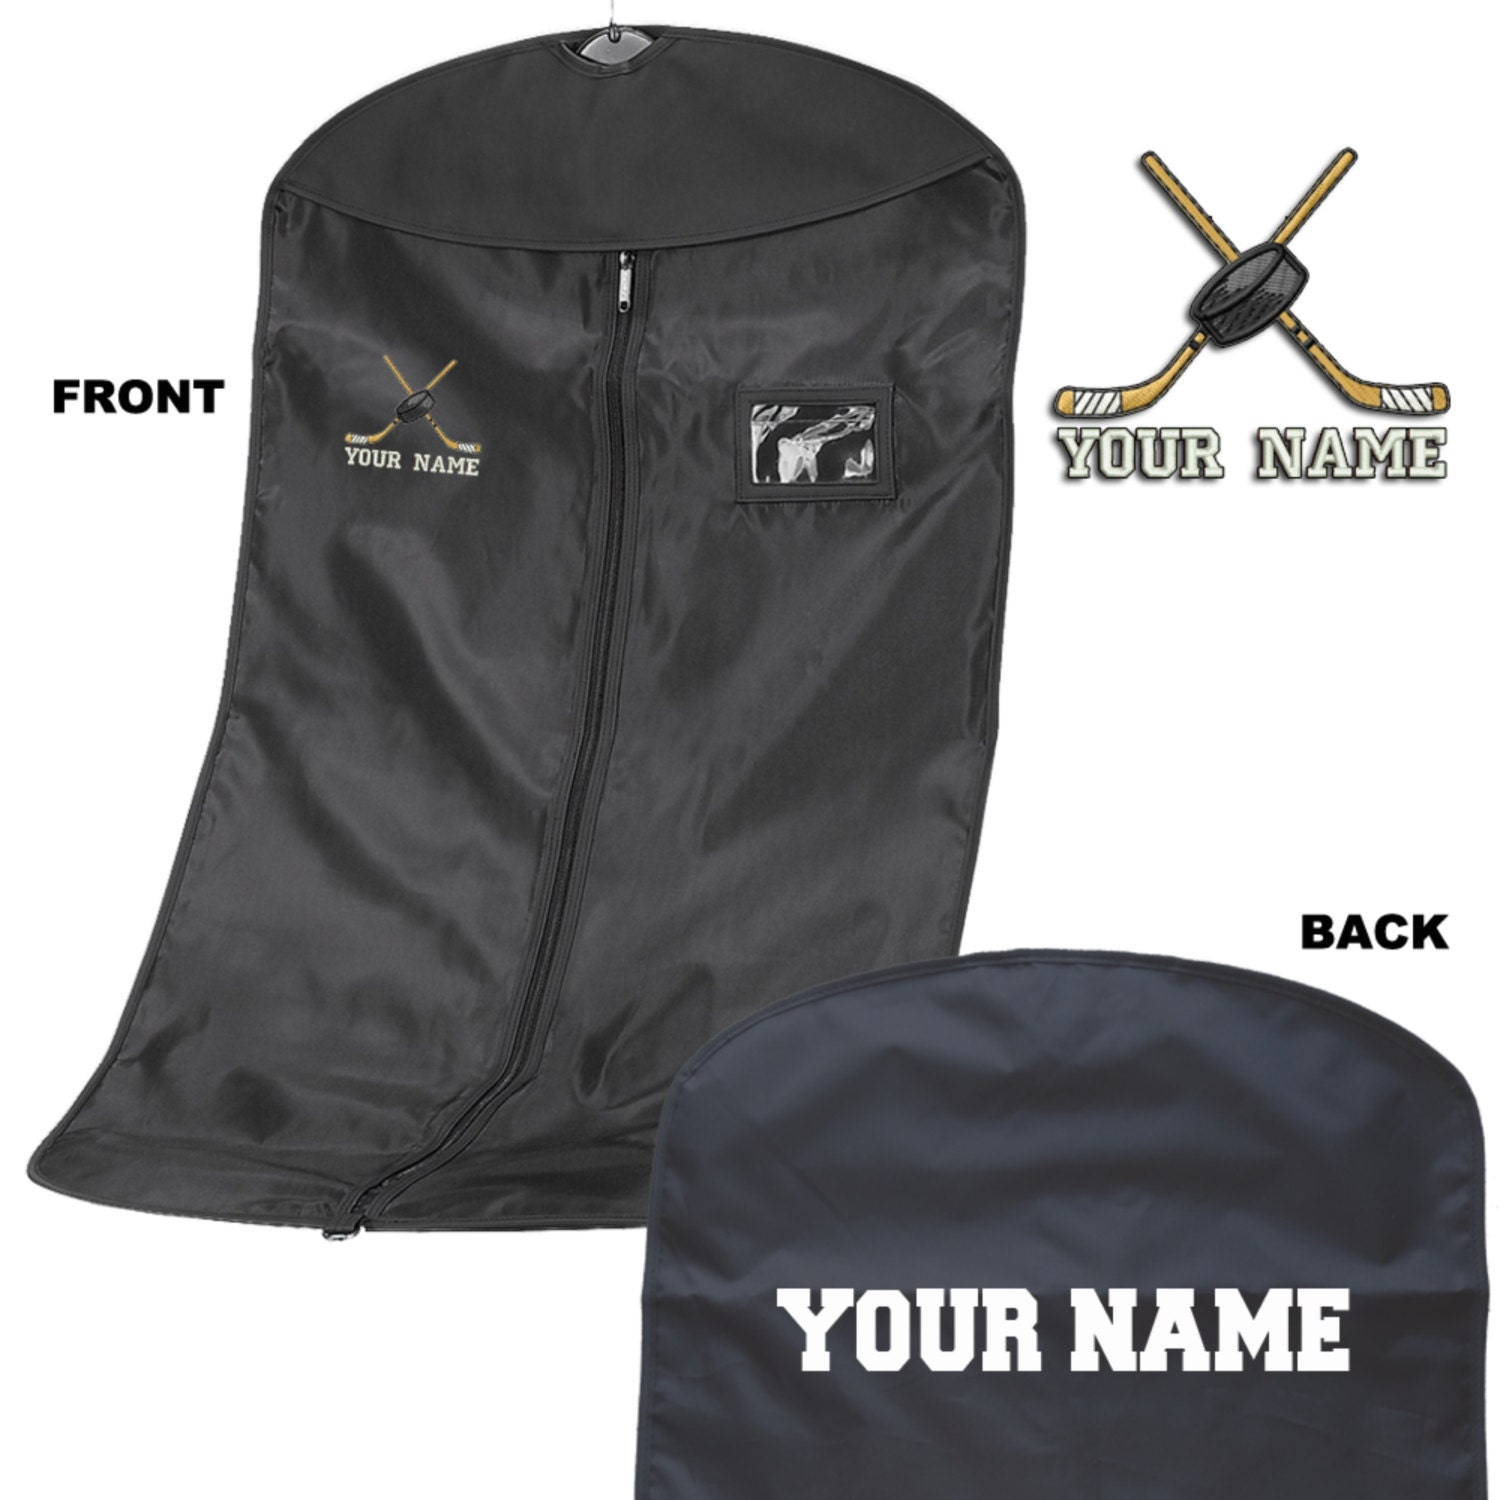 3 x Personalised Embroidered Suit Carrier  Kit Bag  Ice Hockey  Personalized Ice Hockey Suit CarrierKit bag